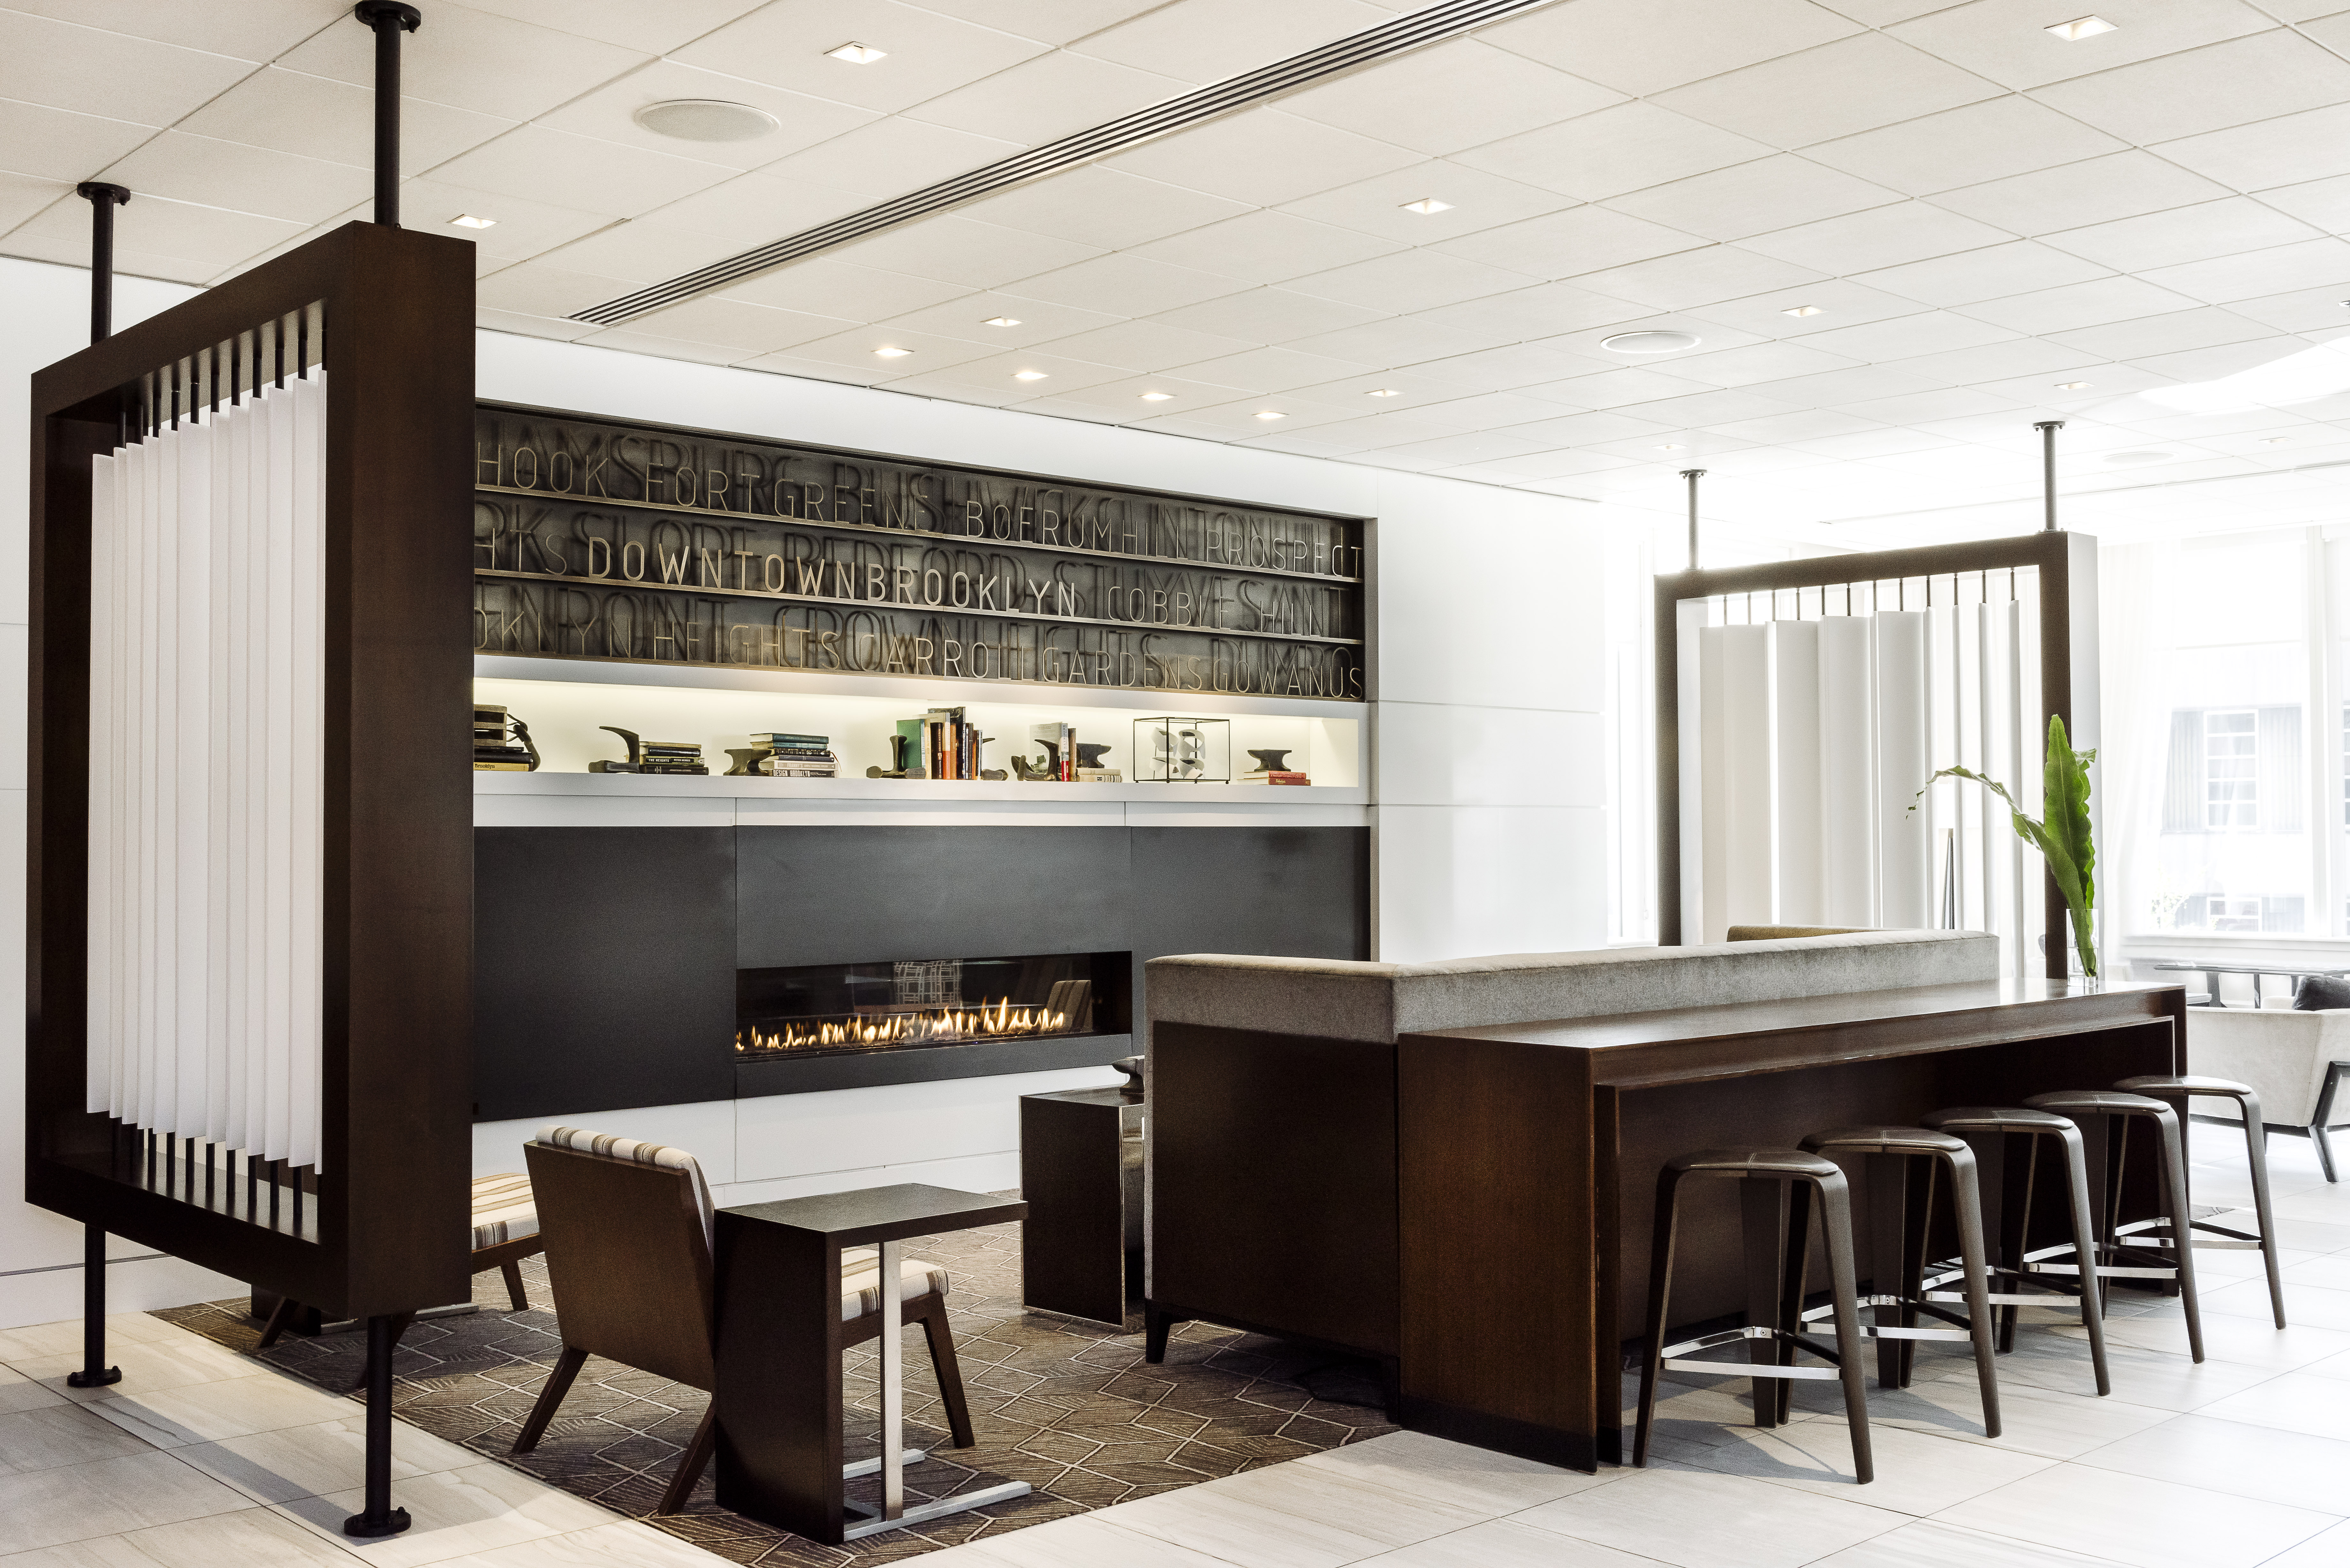 New york interior design firm completes brooklyn marriott hotel krause sawyer nyc interior for Small interior design firms nyc